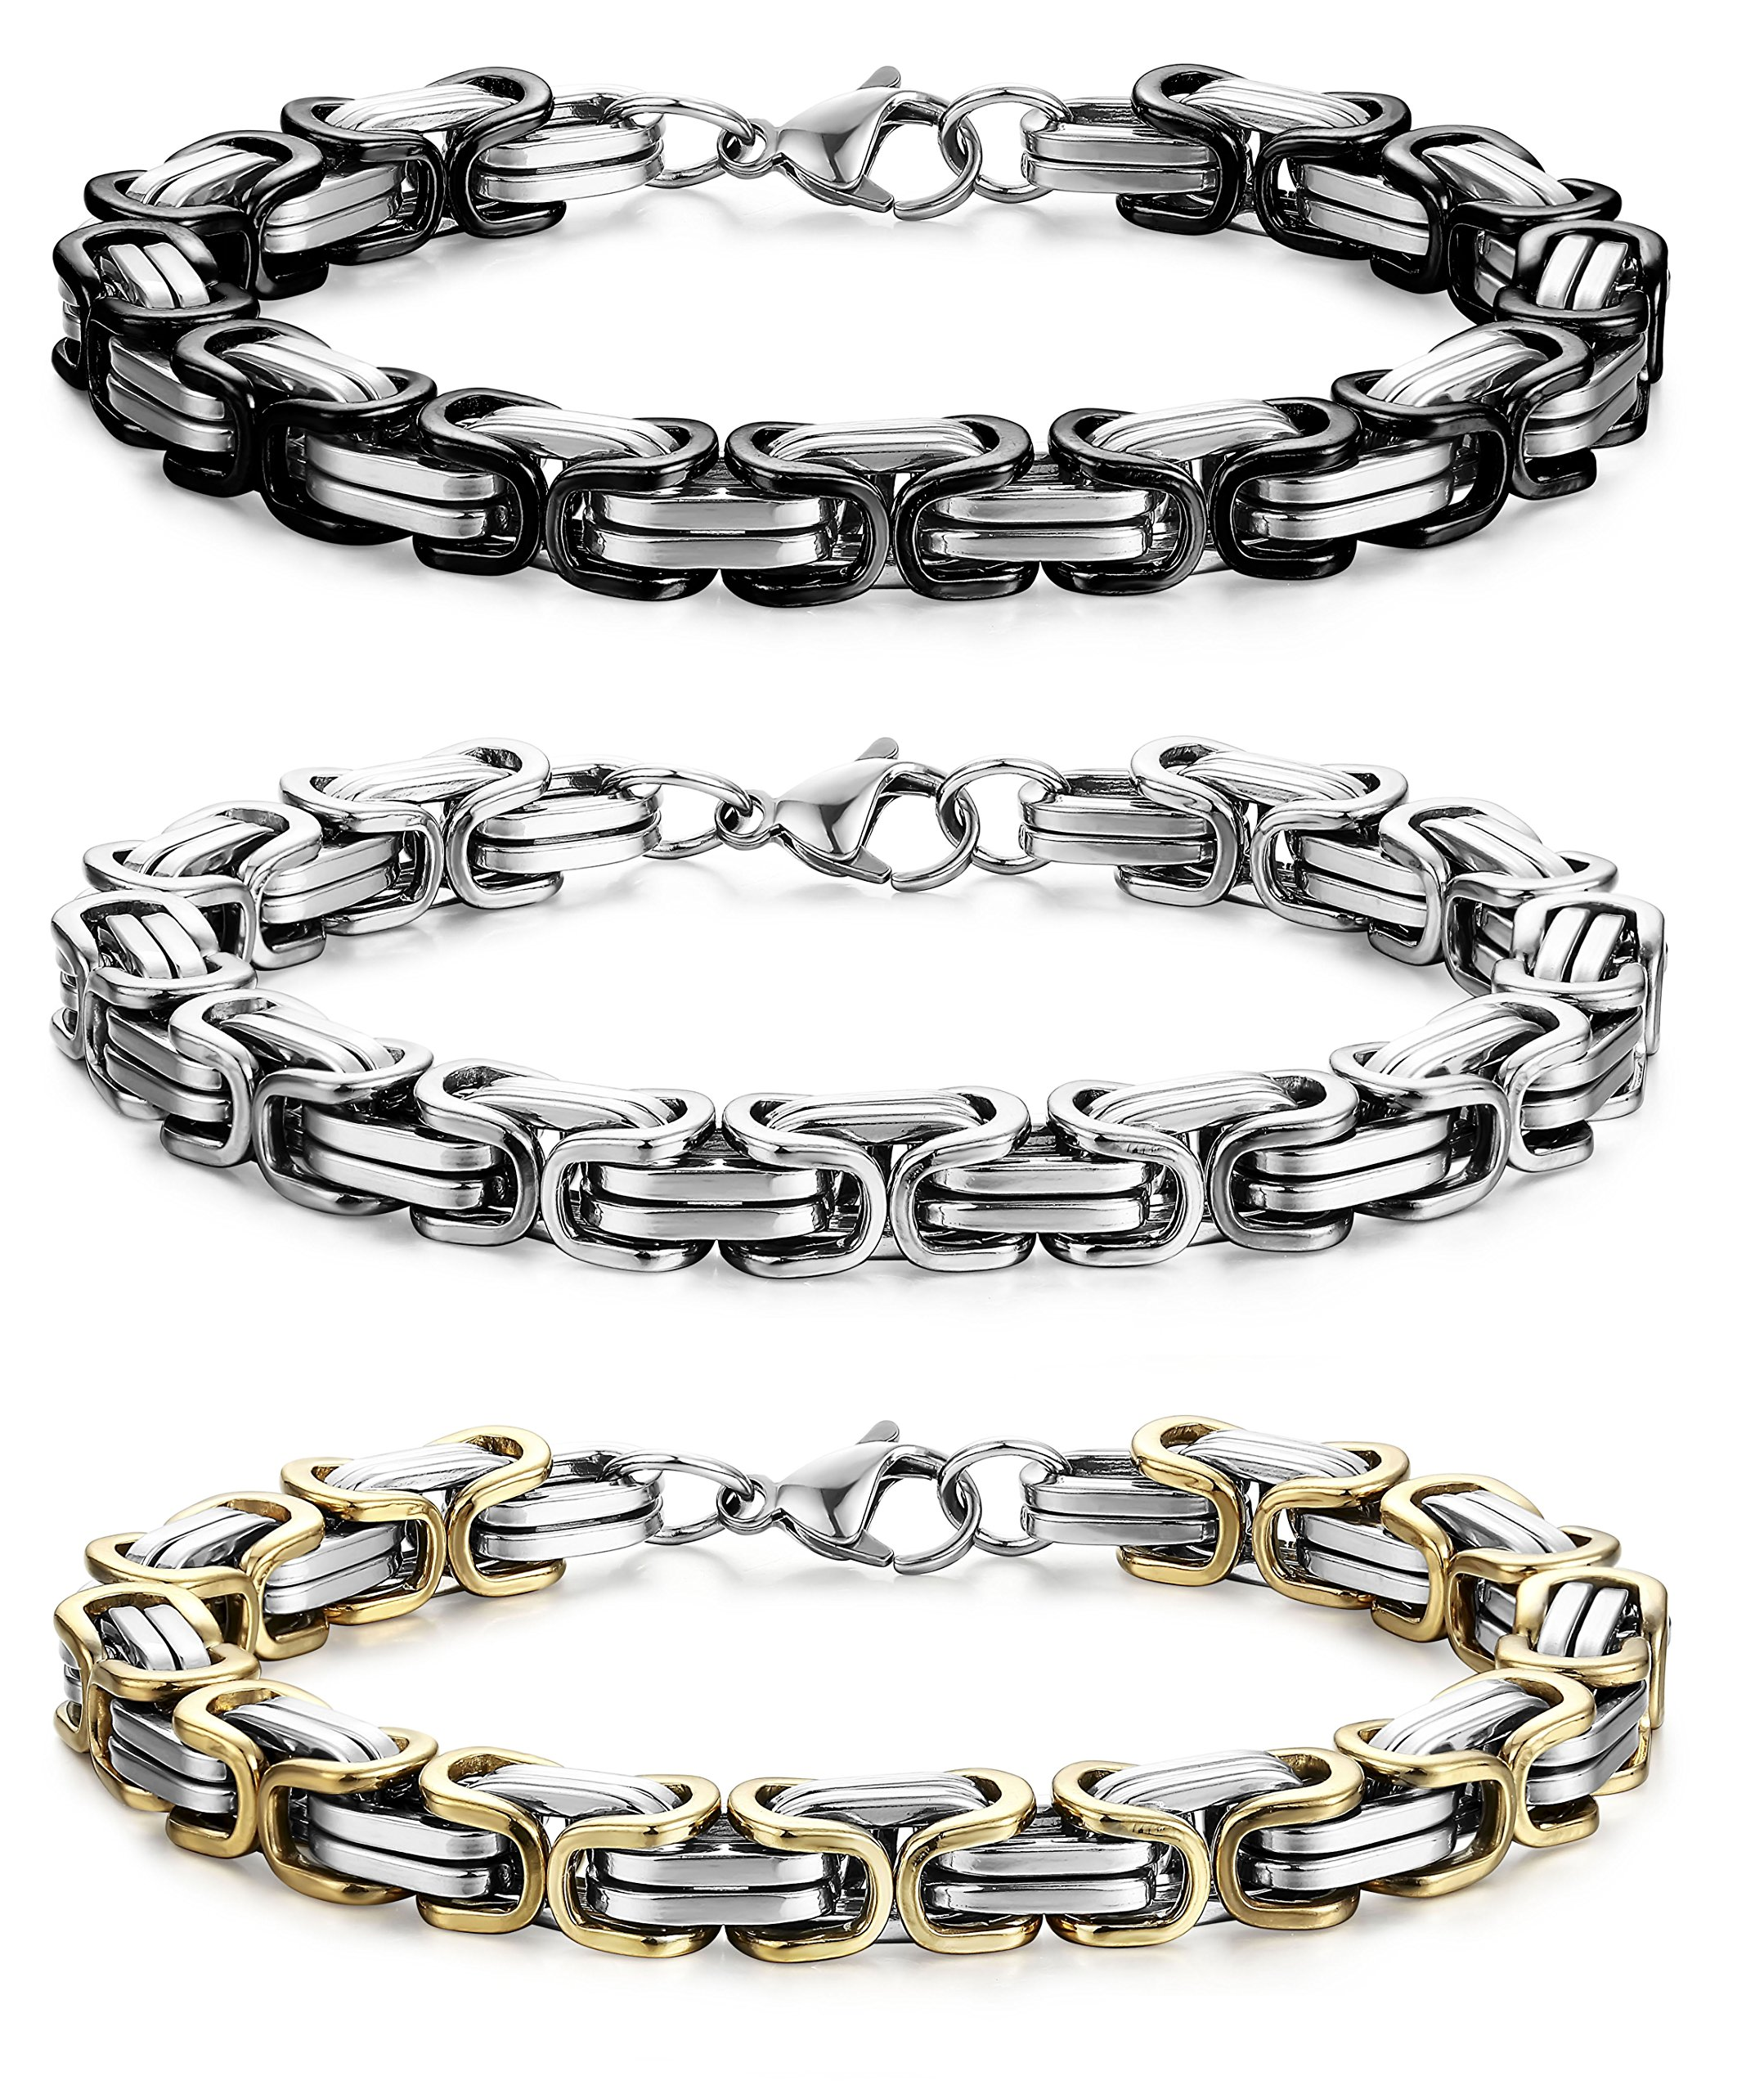 FIBO STEEL 3 Pcs 8MM Stainless Steel Chain Link Bracelets for Men Byzantine Bracelets,9.1 inches